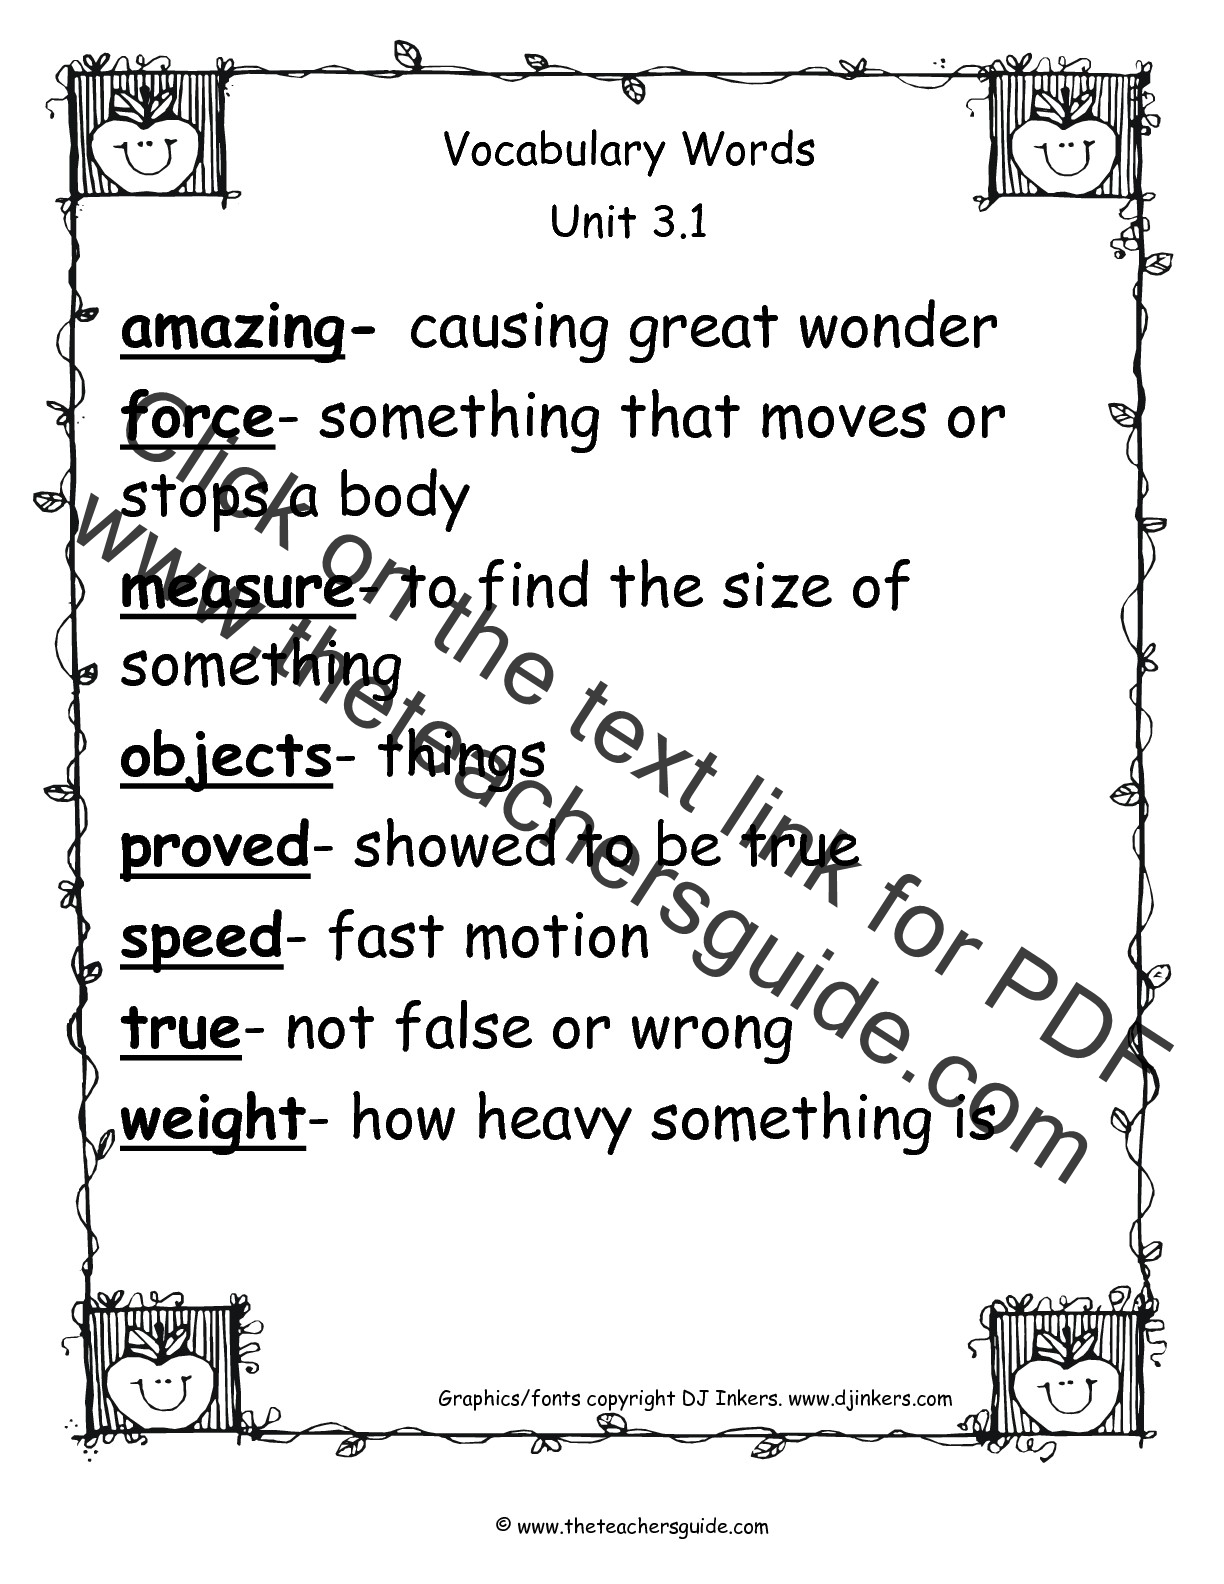 Worksheet On Vocabulary For Grade 2